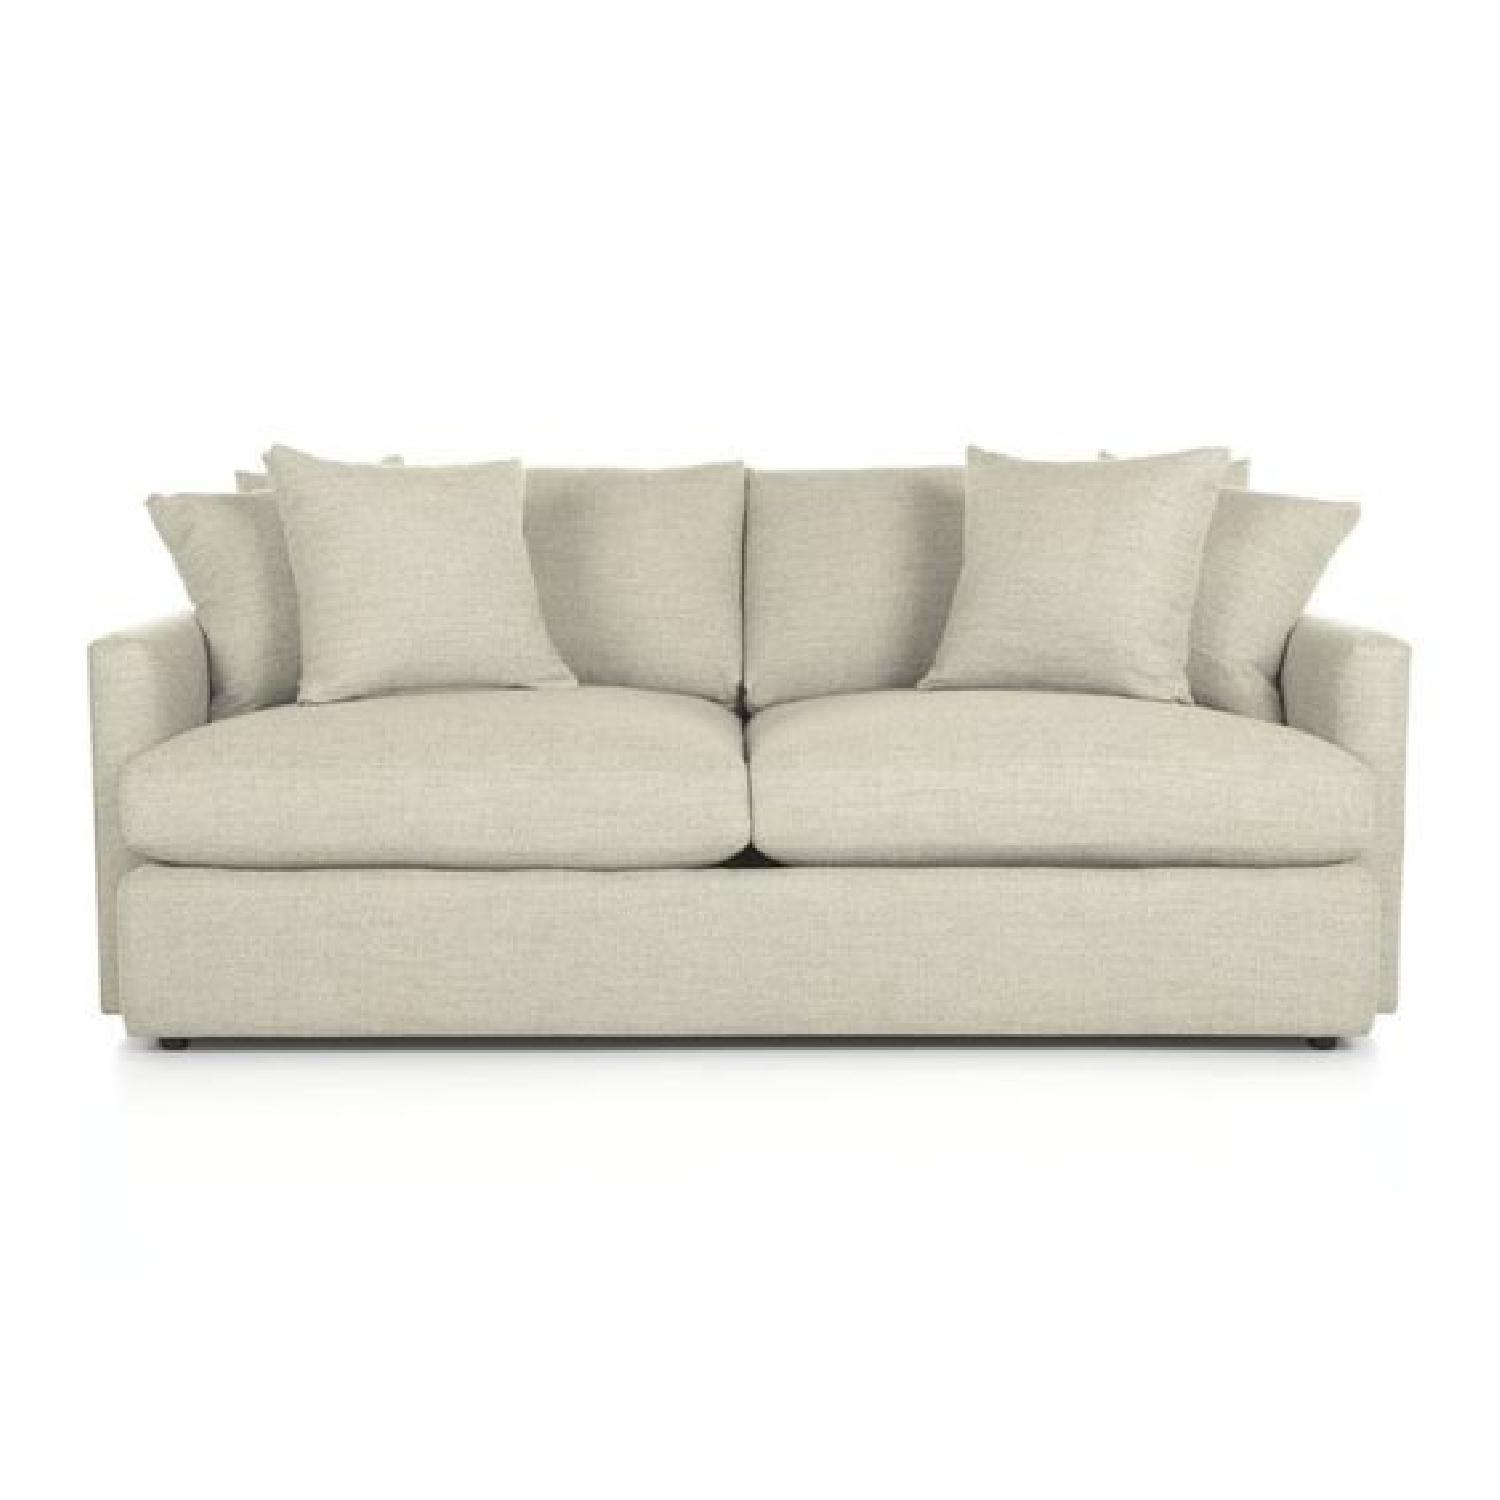 Crate & Barrel Lounge II Modern Sofa